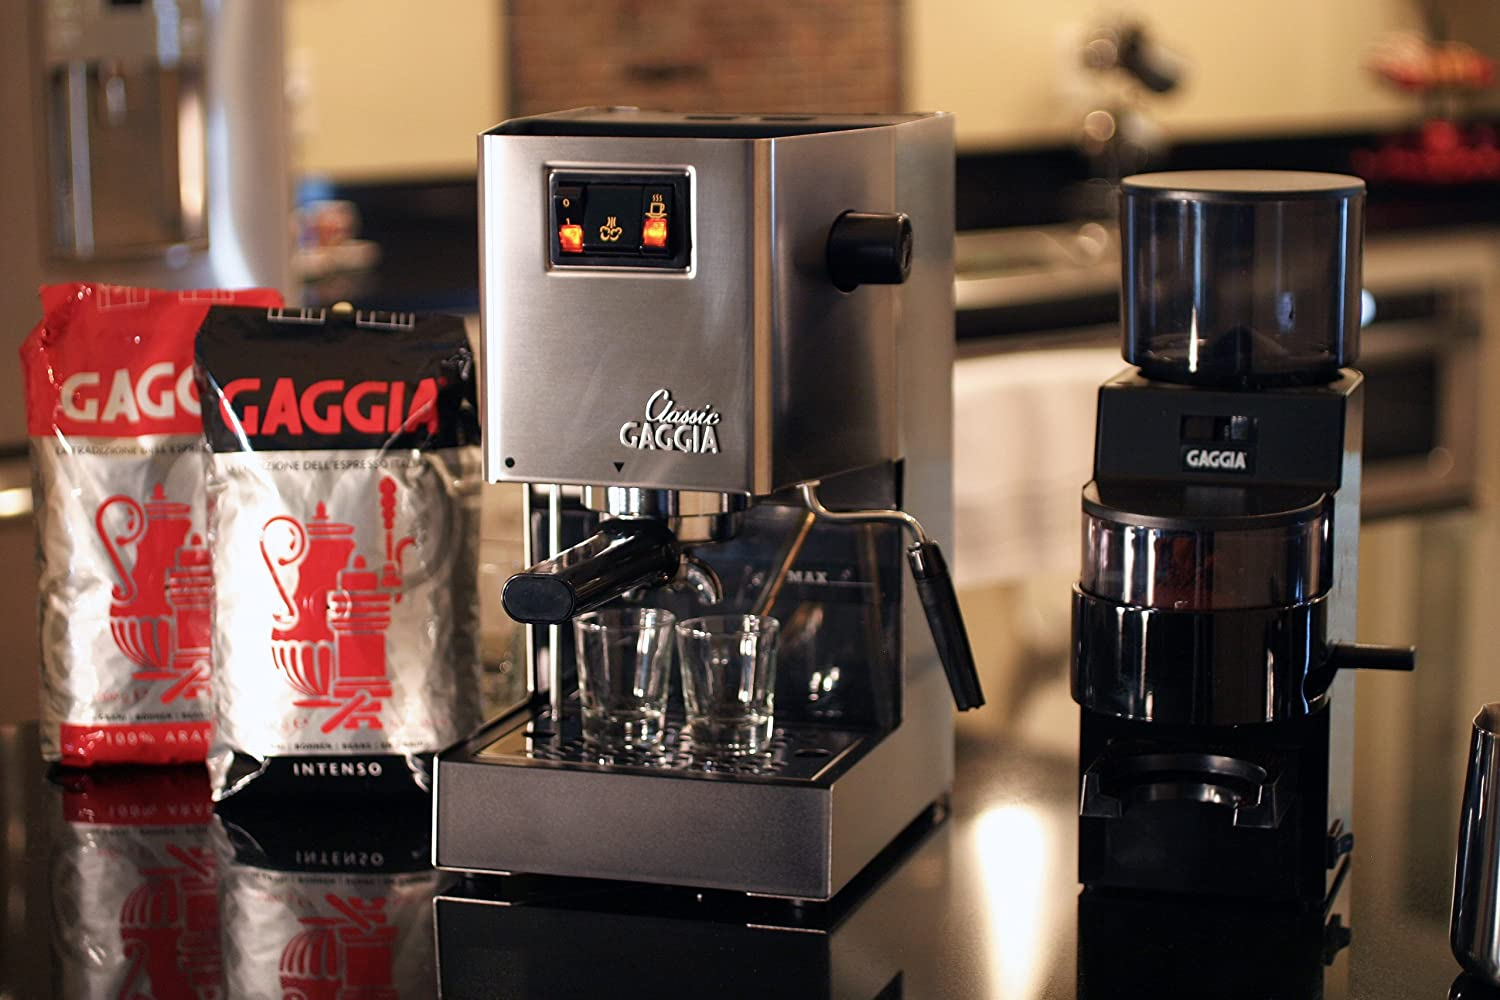 Electronic Classic Gaggia Coffee Machine amazon com gaggia 14101 classic espresso machine brushed stainless steel kitchen dining